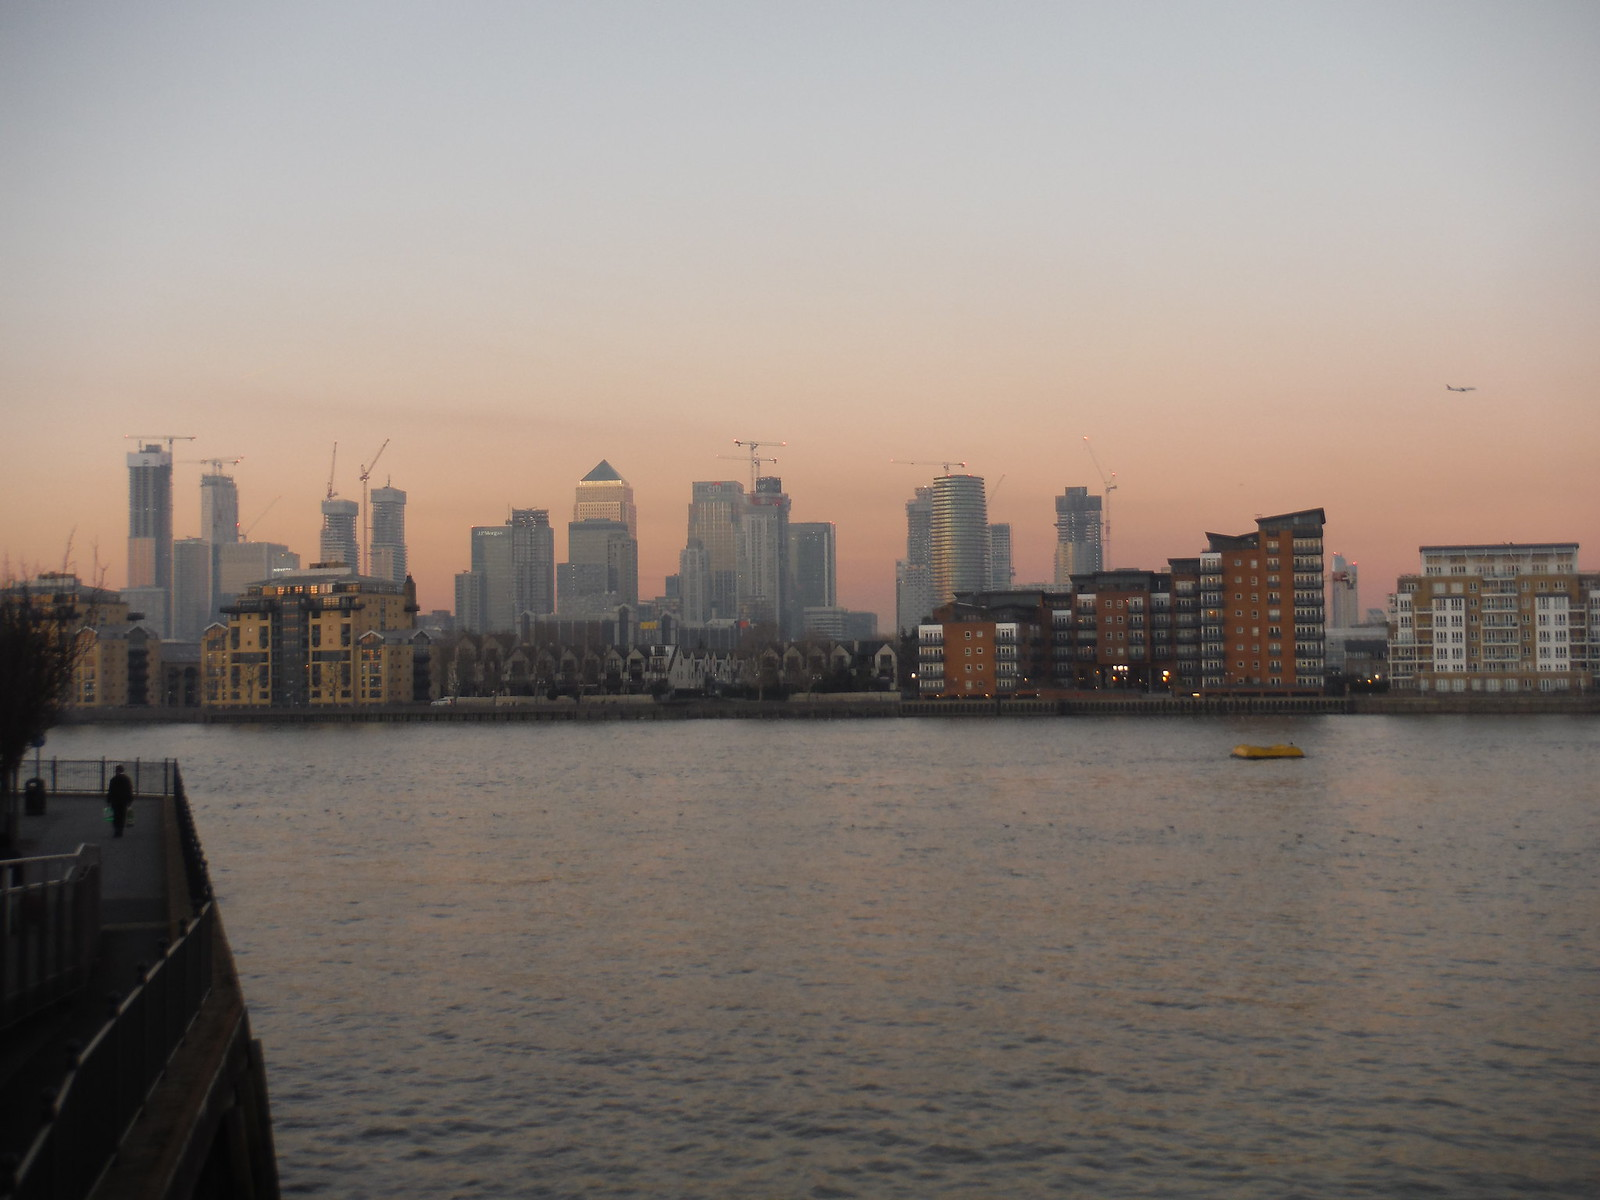 Canary Wharf across The Thames SWC Short Walk 36 - Waterlink Way (Lower Sydenham to Greenwich)